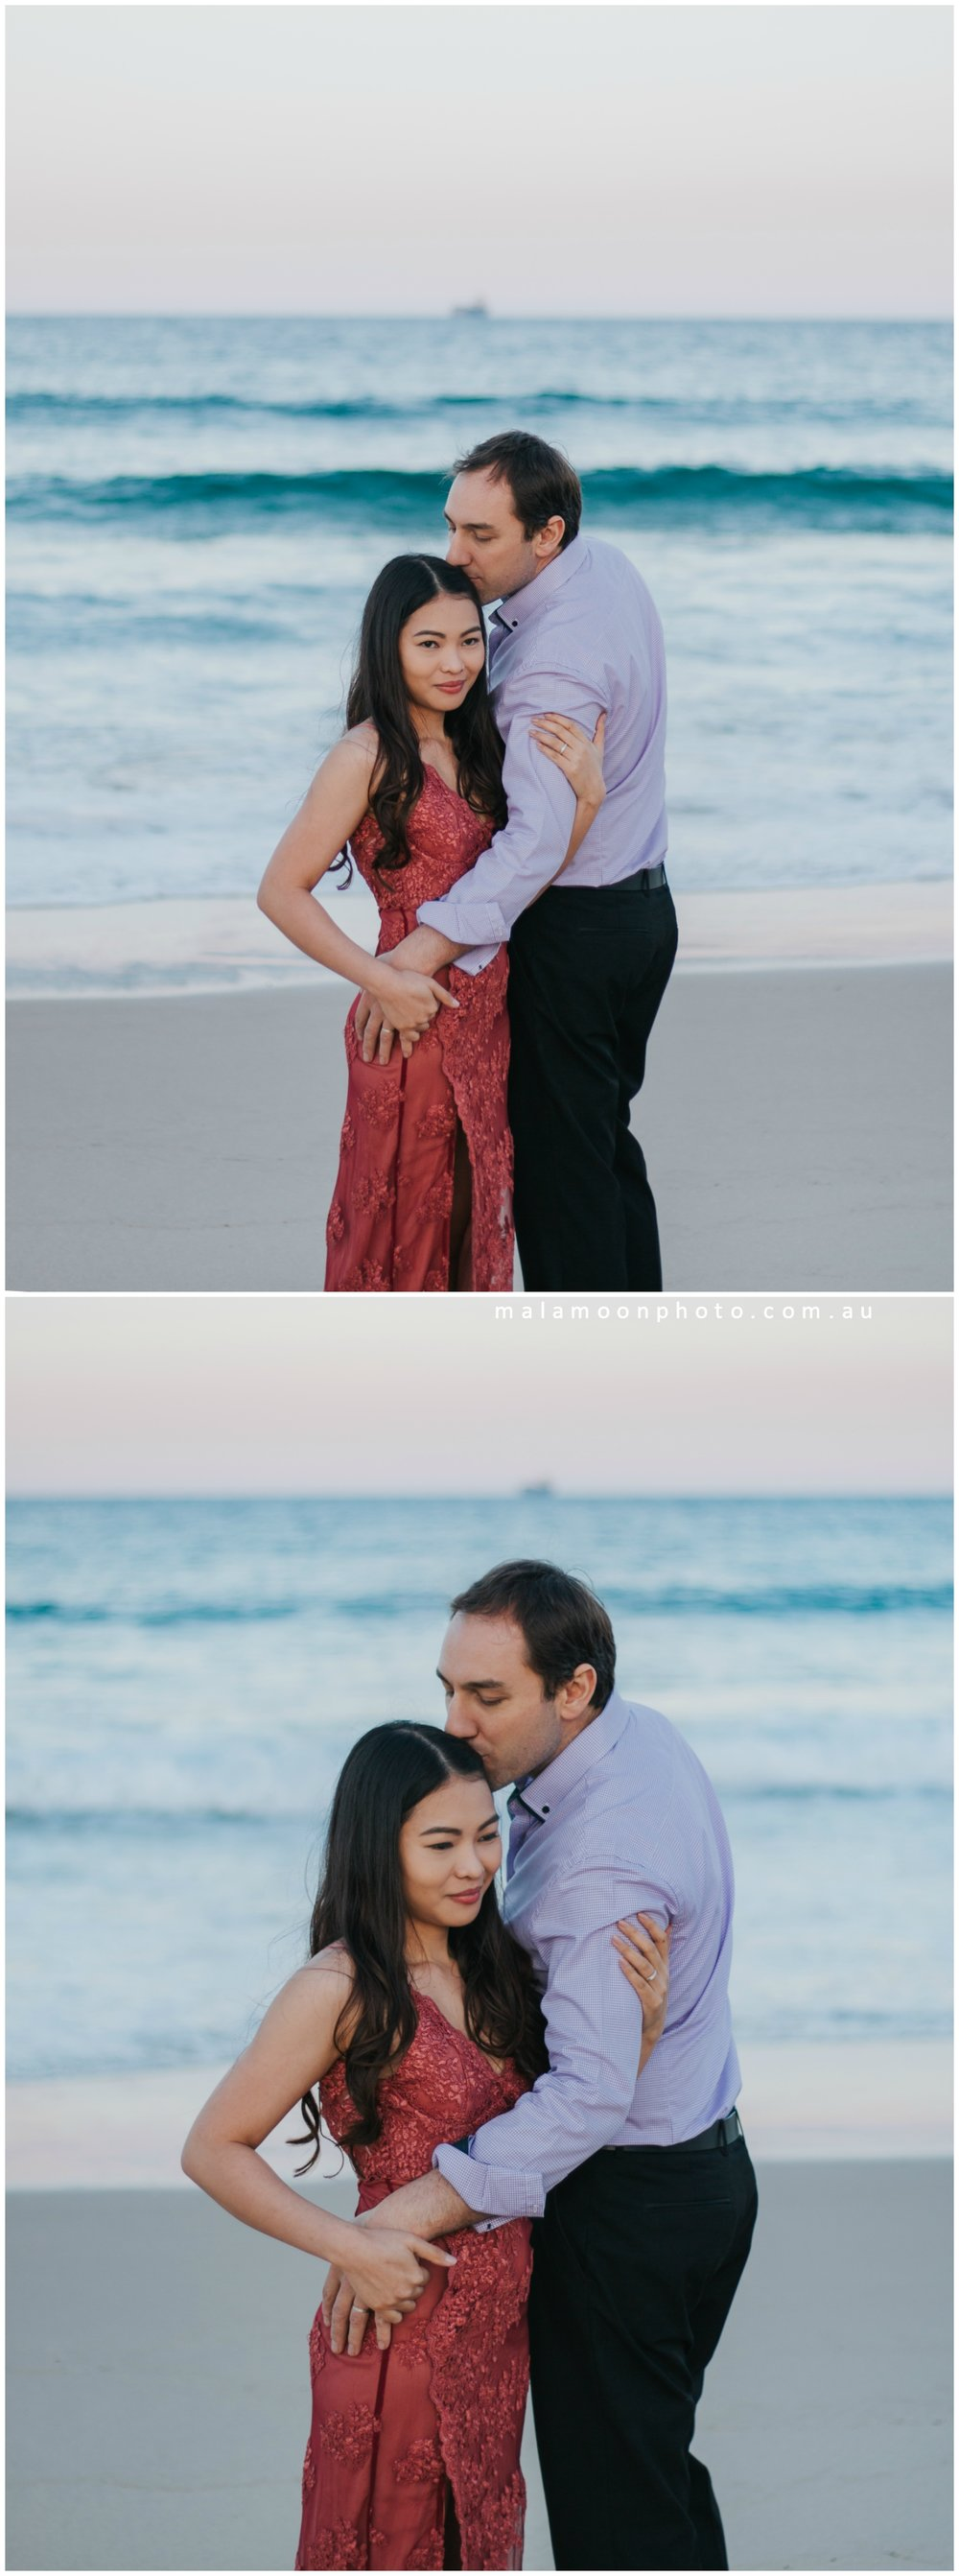 couple photography on beach at sunset